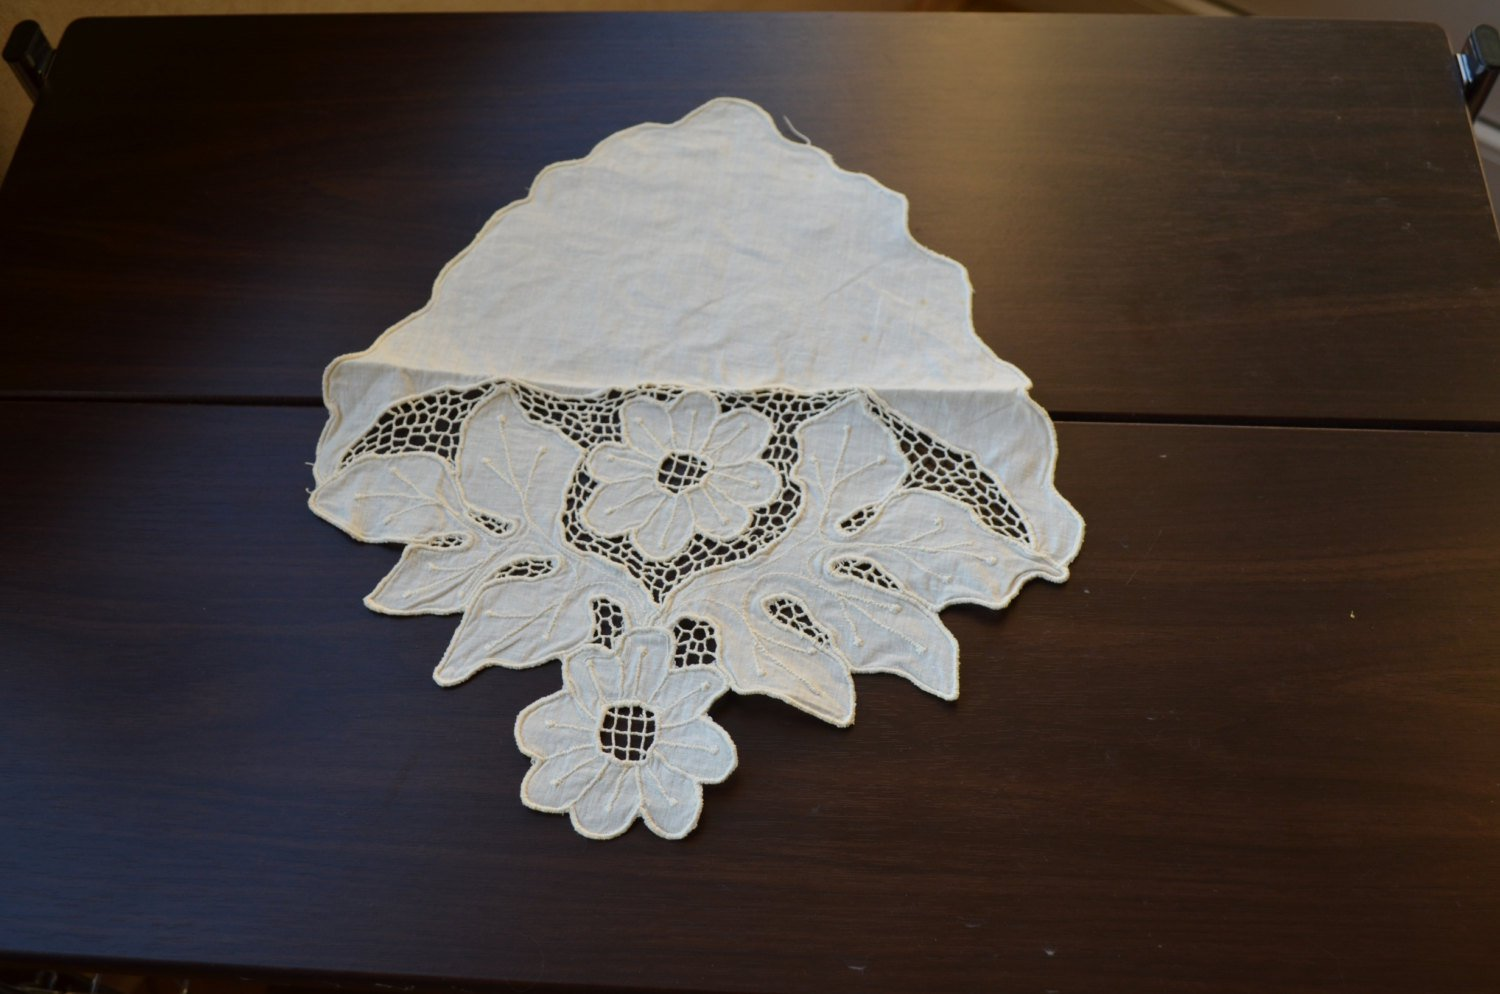 Vintage Decor Napkin for forniture from USSR 50s, Lace decor from USSR, table-napkin, napkin for dec